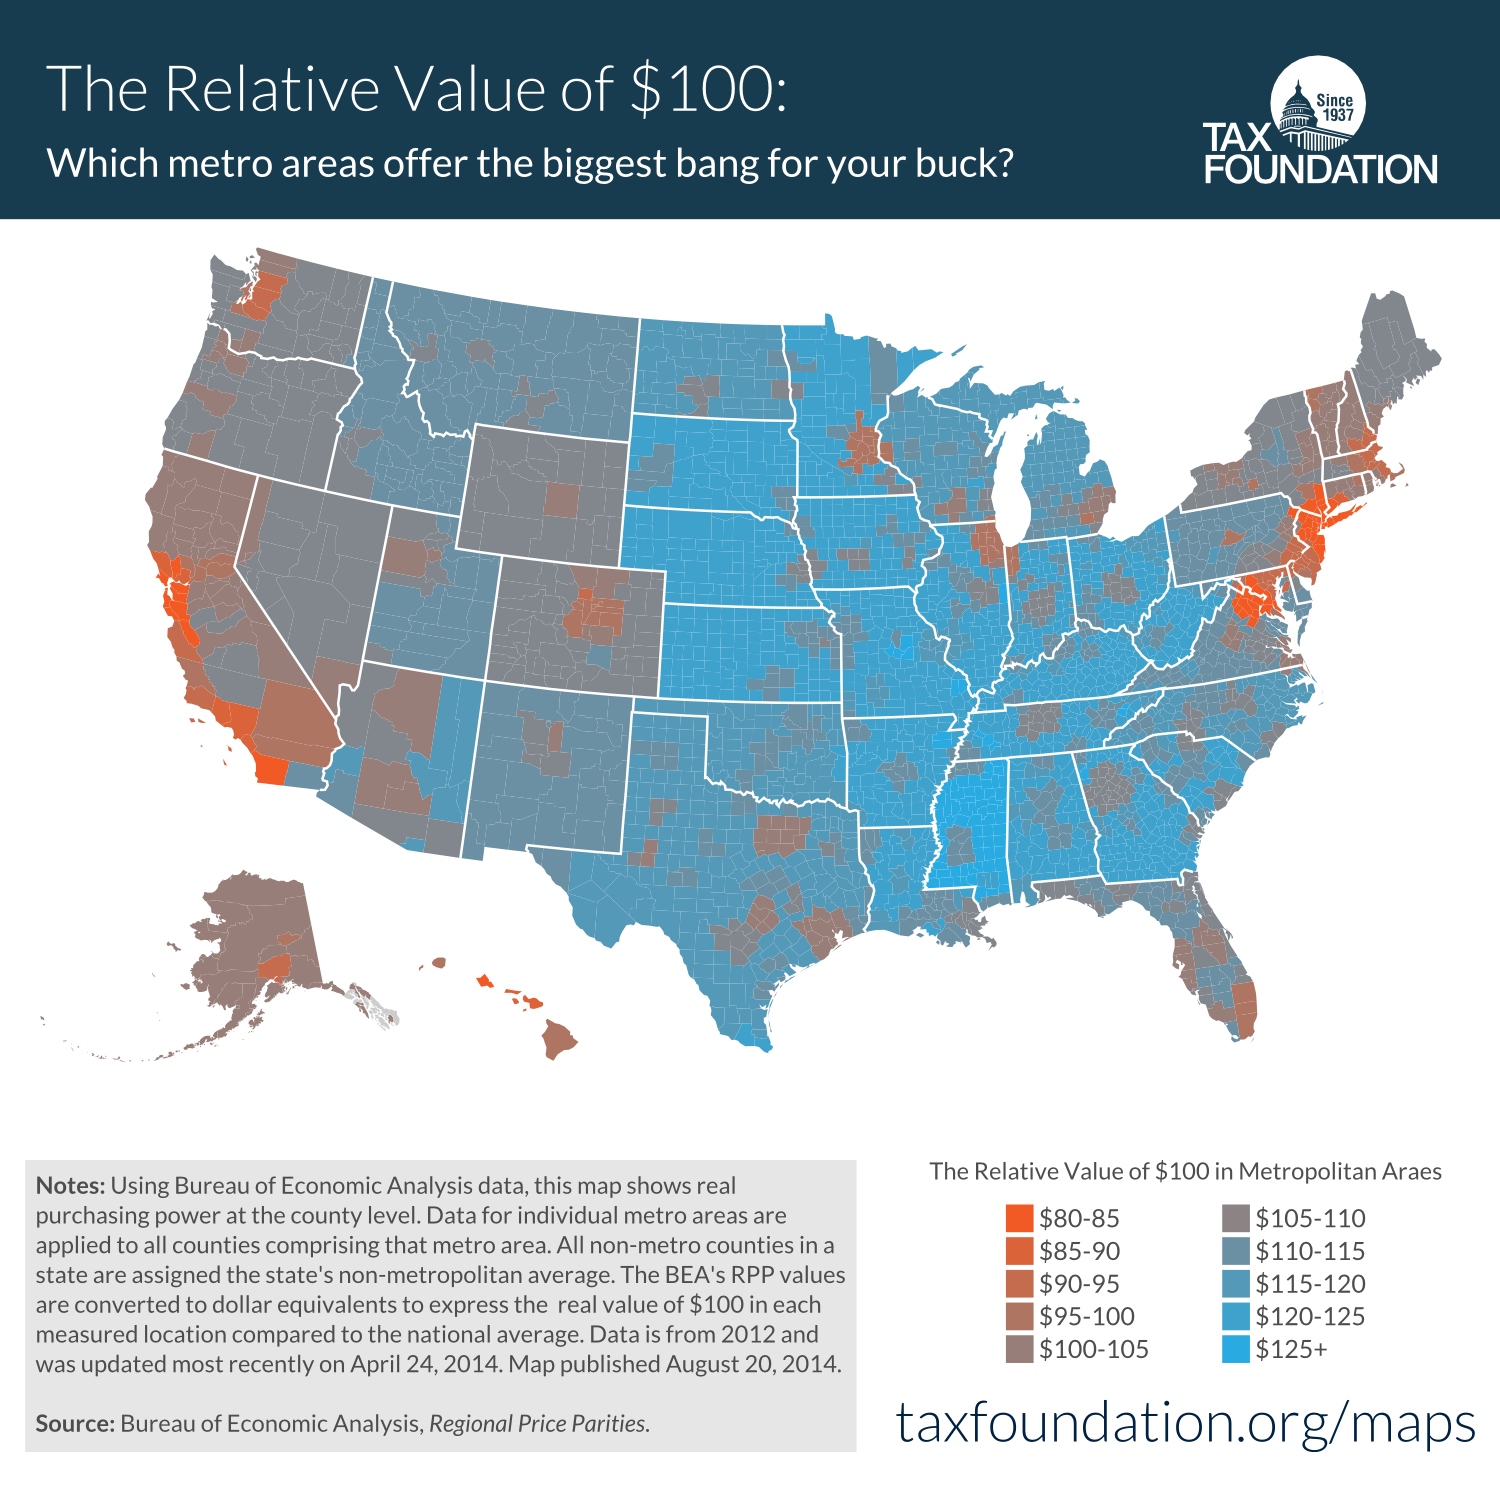 The Real Value of $100 in Metropolitan Areas | Tax Foundation